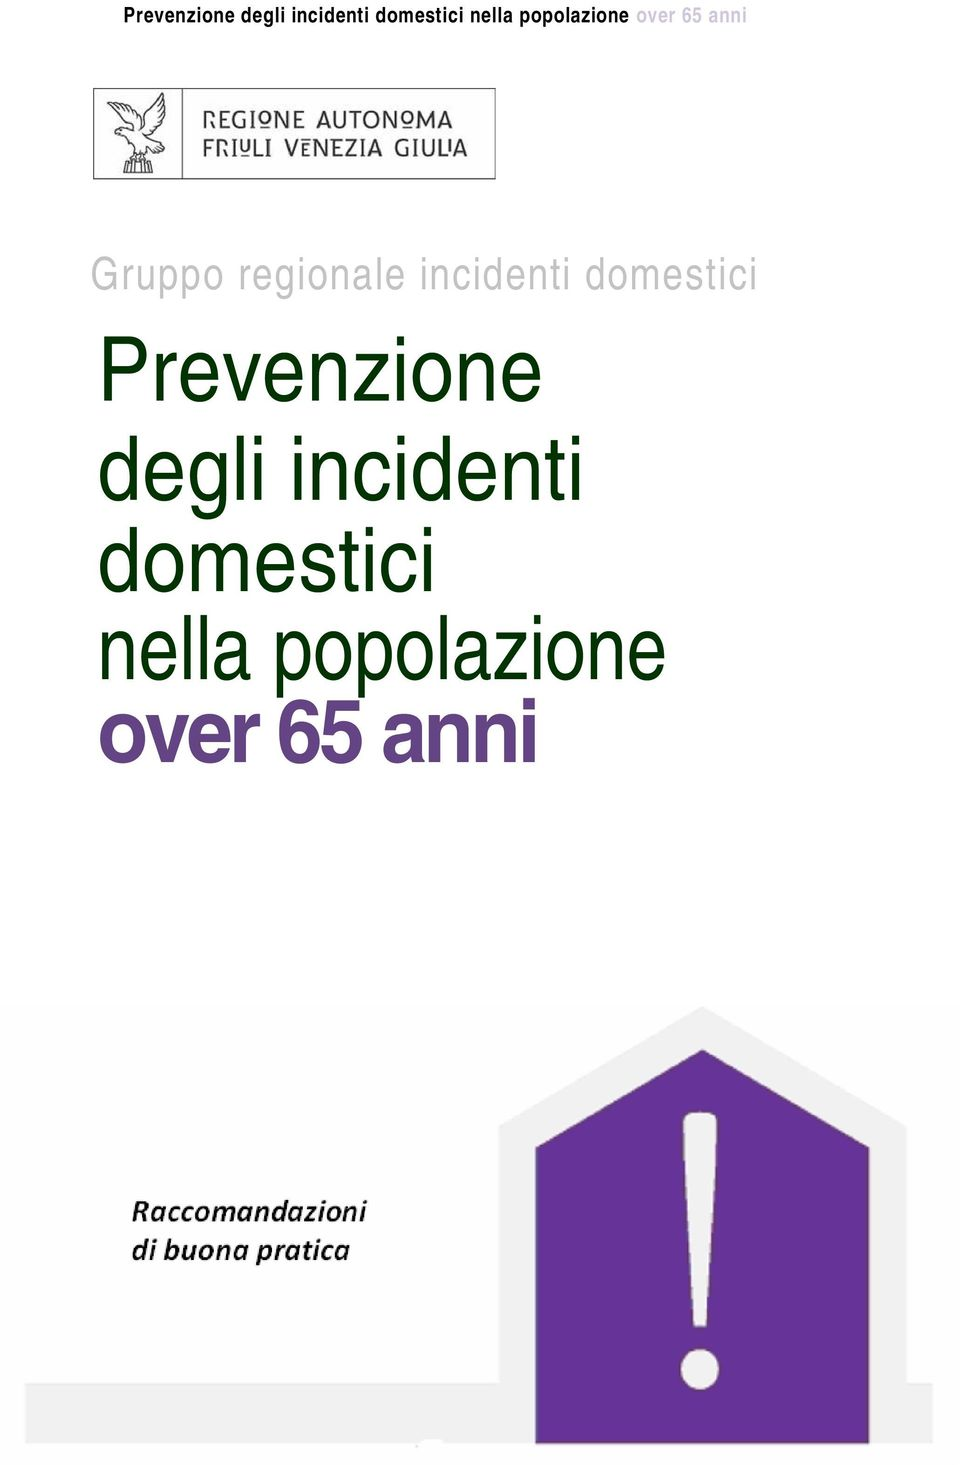 degli incidenti domestici